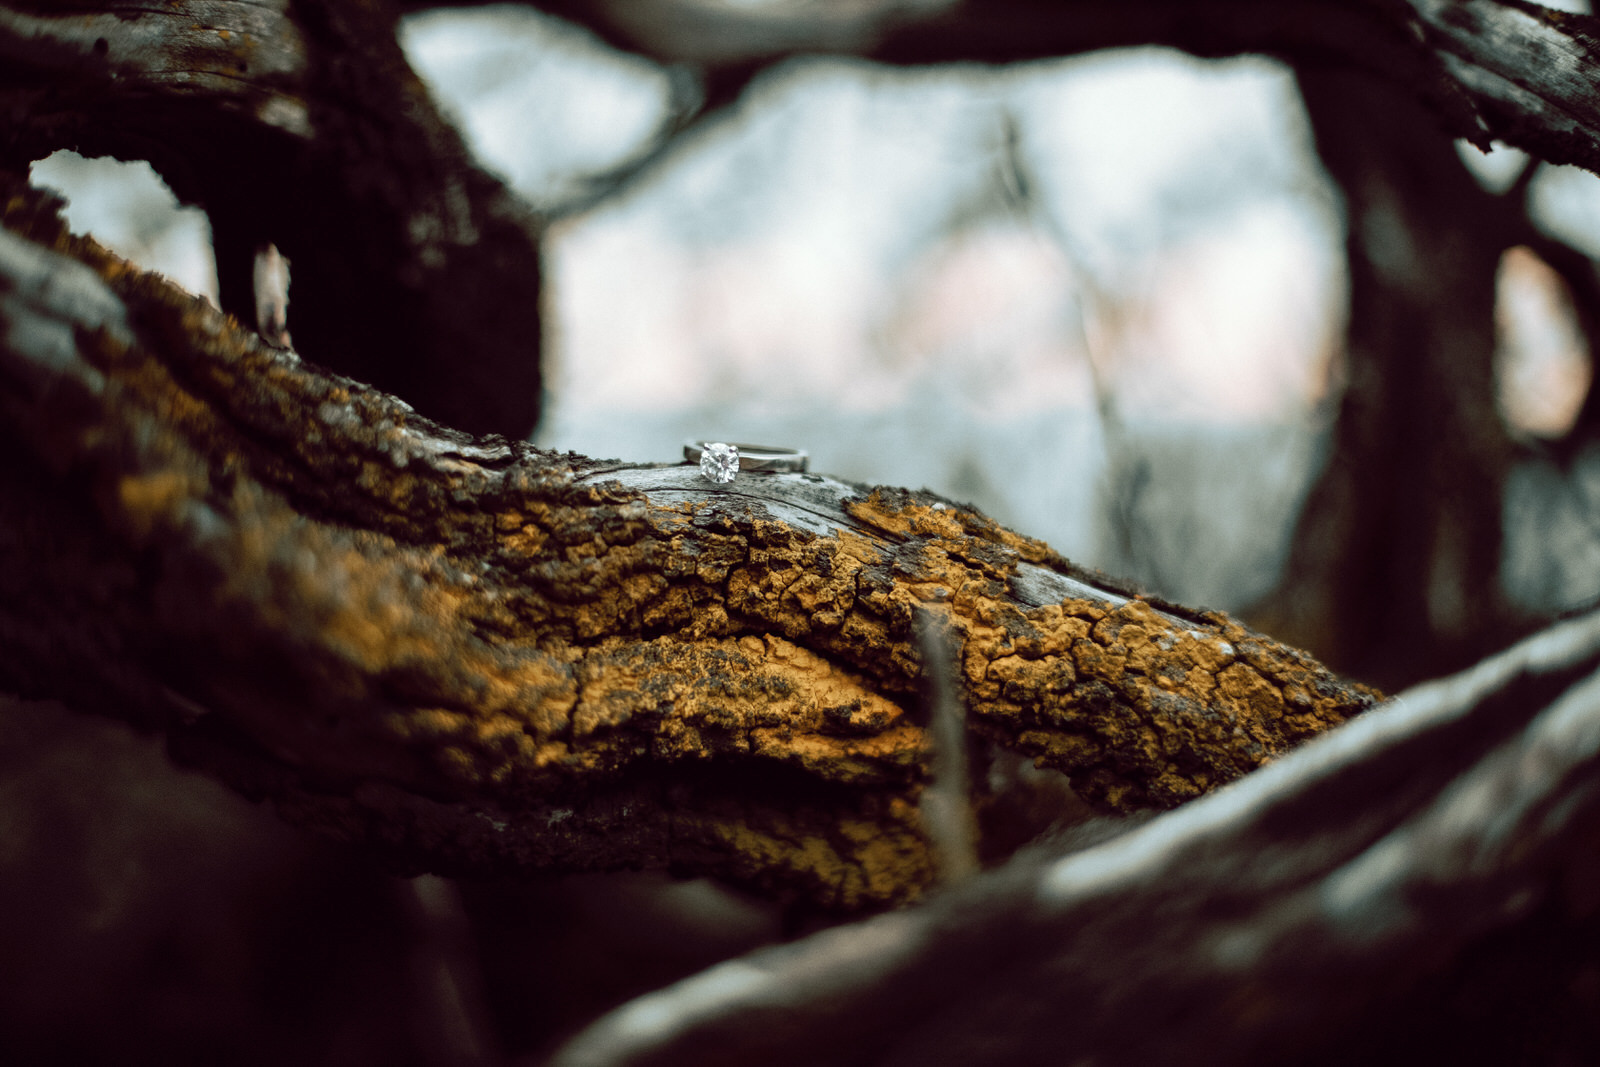 A diamond wedding ring resting on branch with yellow algea